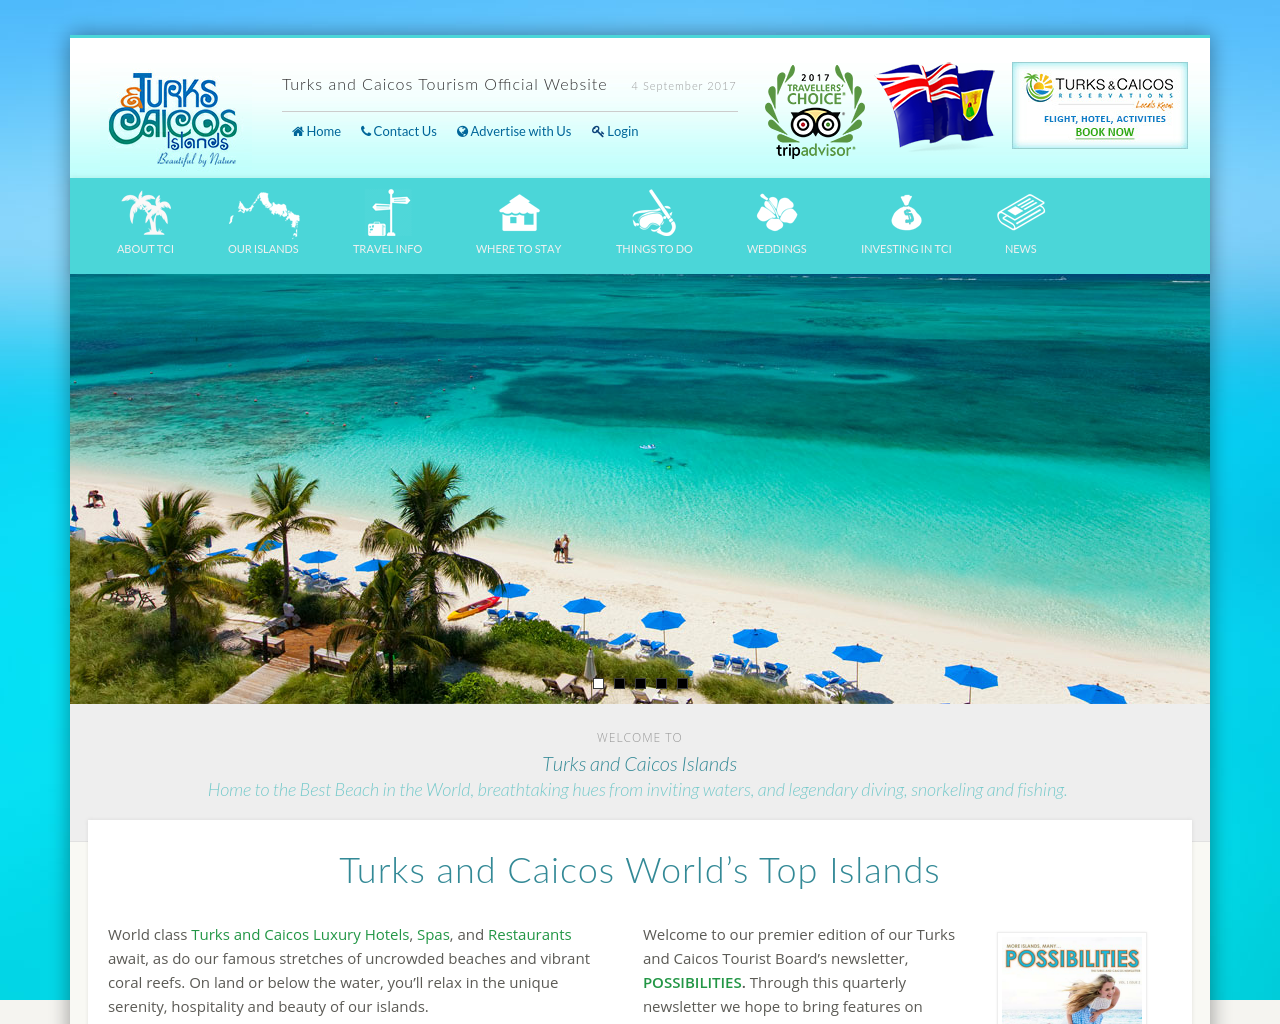 Turks-&-Caicos-Islands-Advertising-Reviews-Pricing